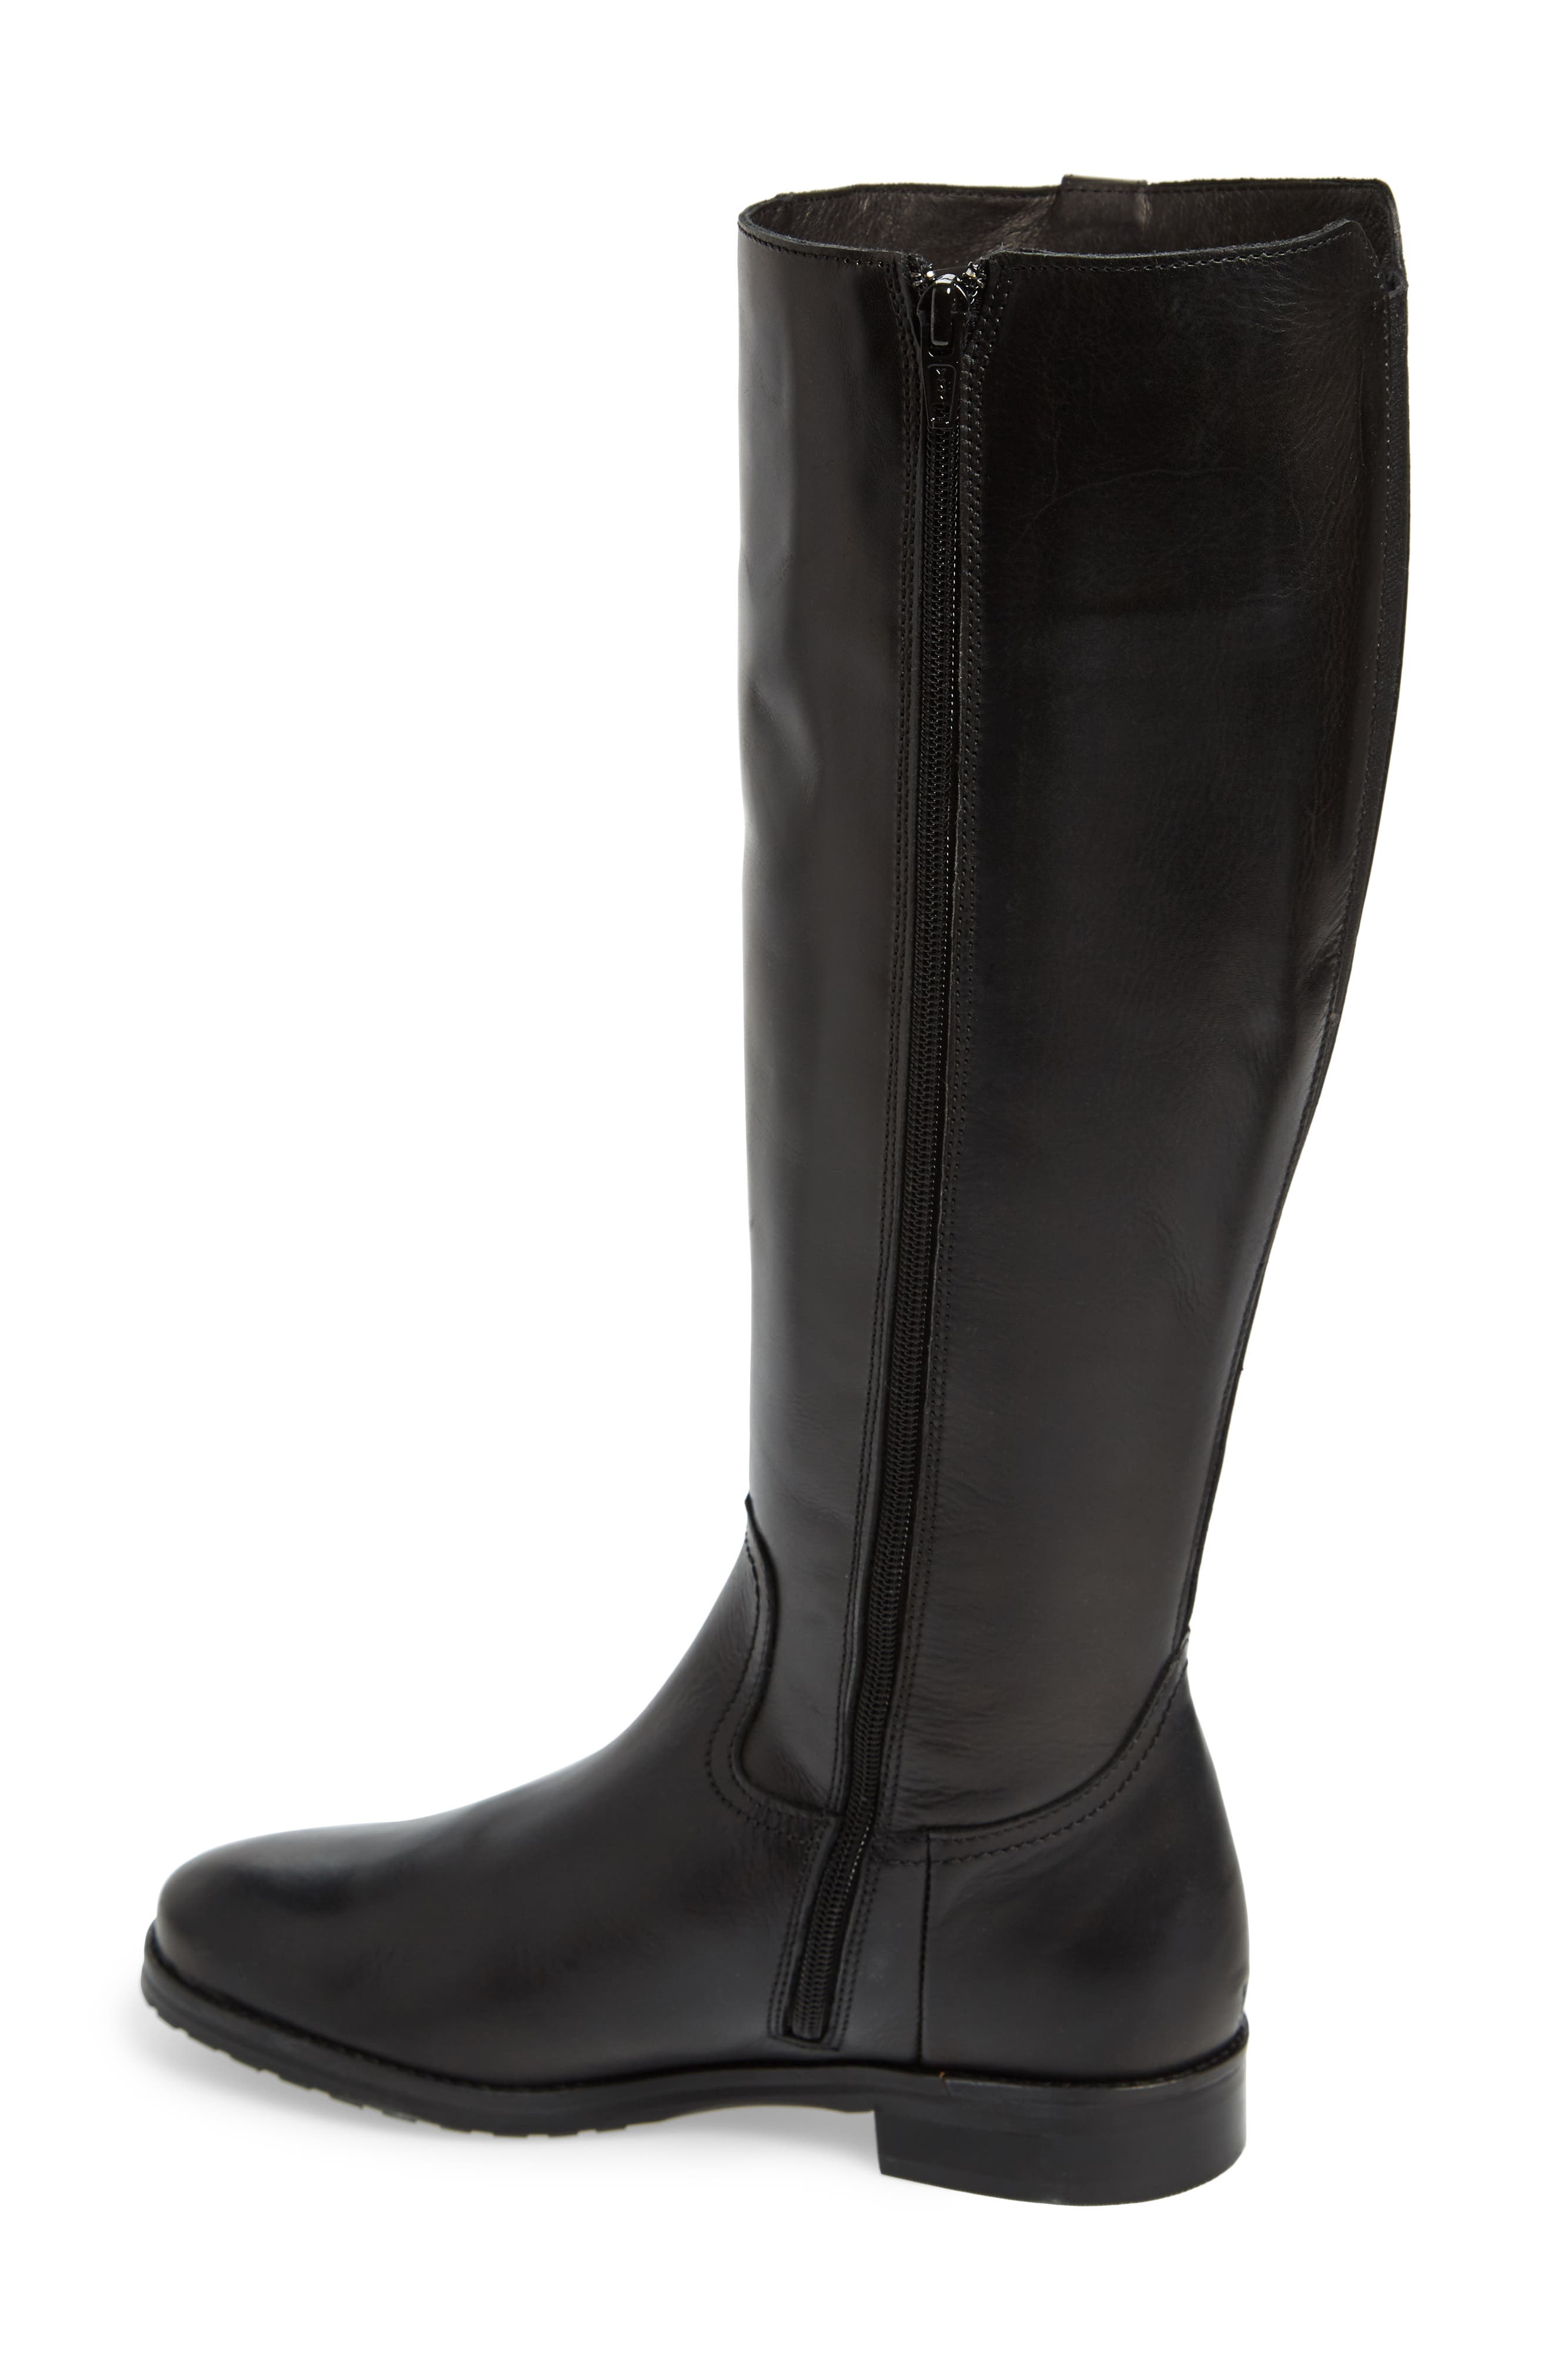 Anson Waterproof Boot,                             Alternate thumbnail 2, color,                             001